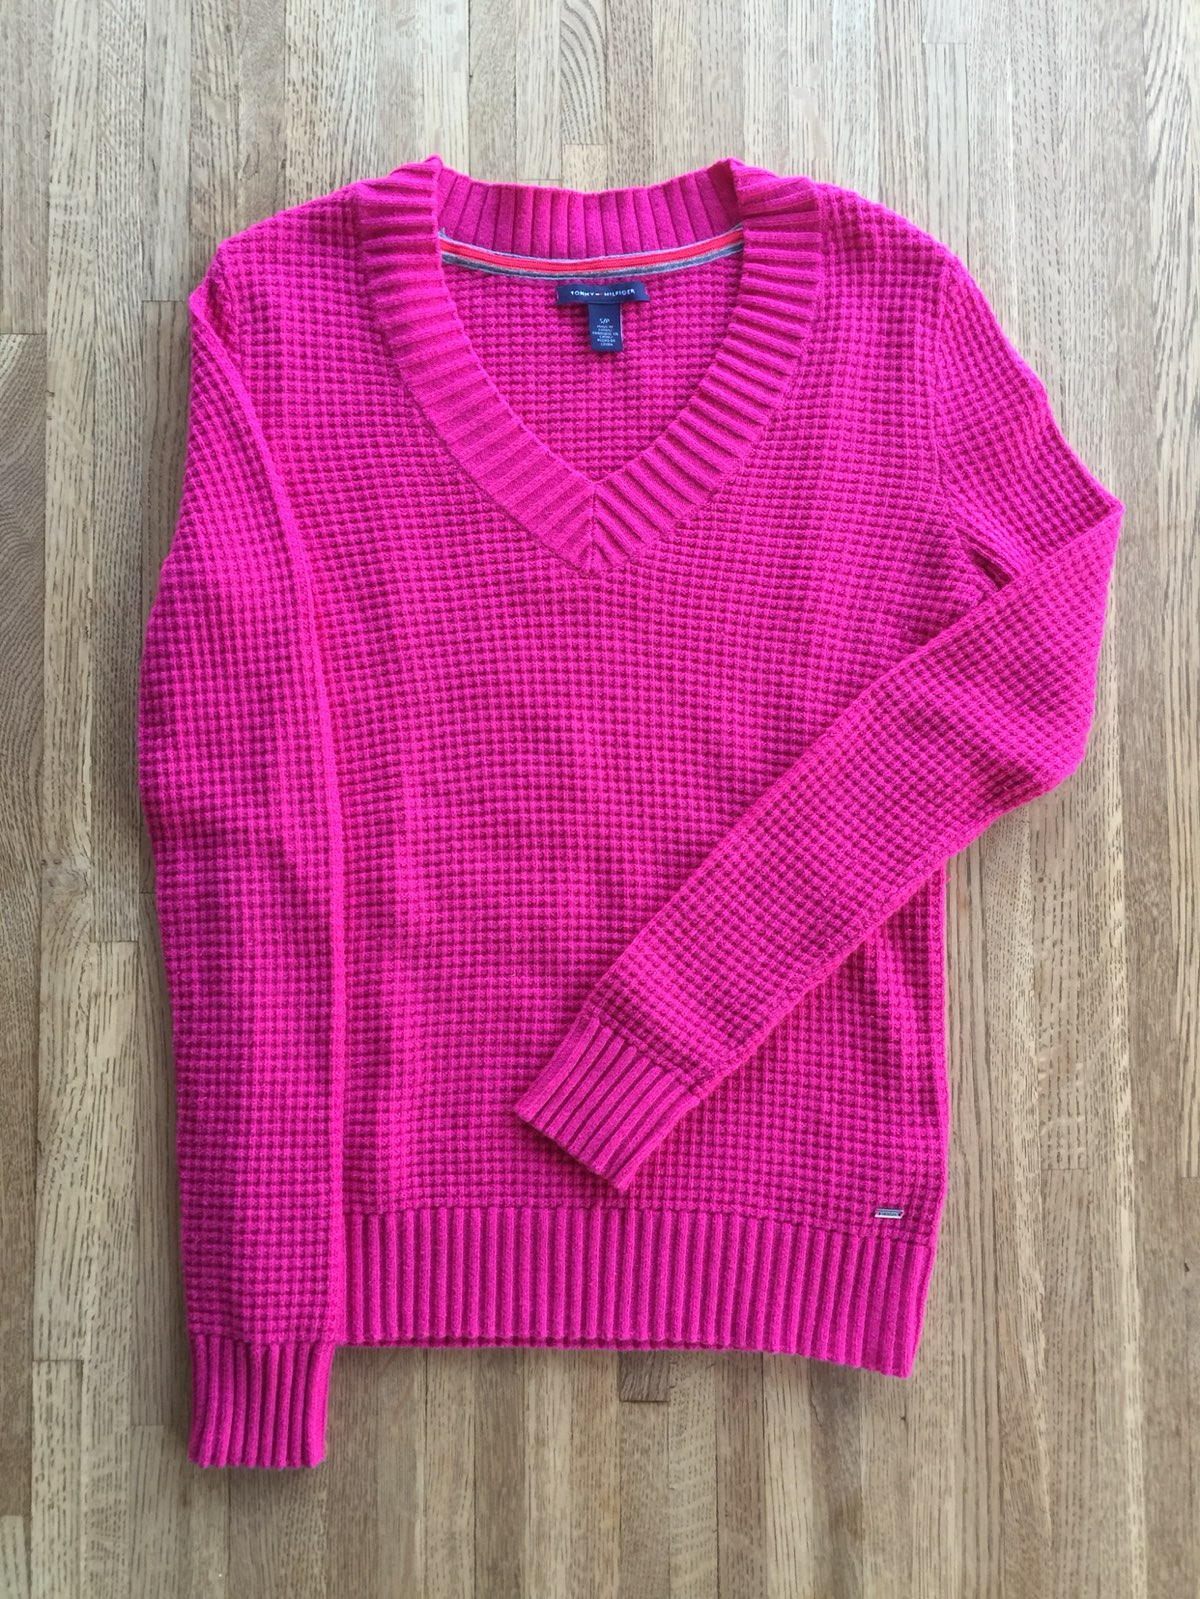 Tommy Hilfiger Pink Sweater - Mercari: BUY & SELL THINGS YOU LOVE